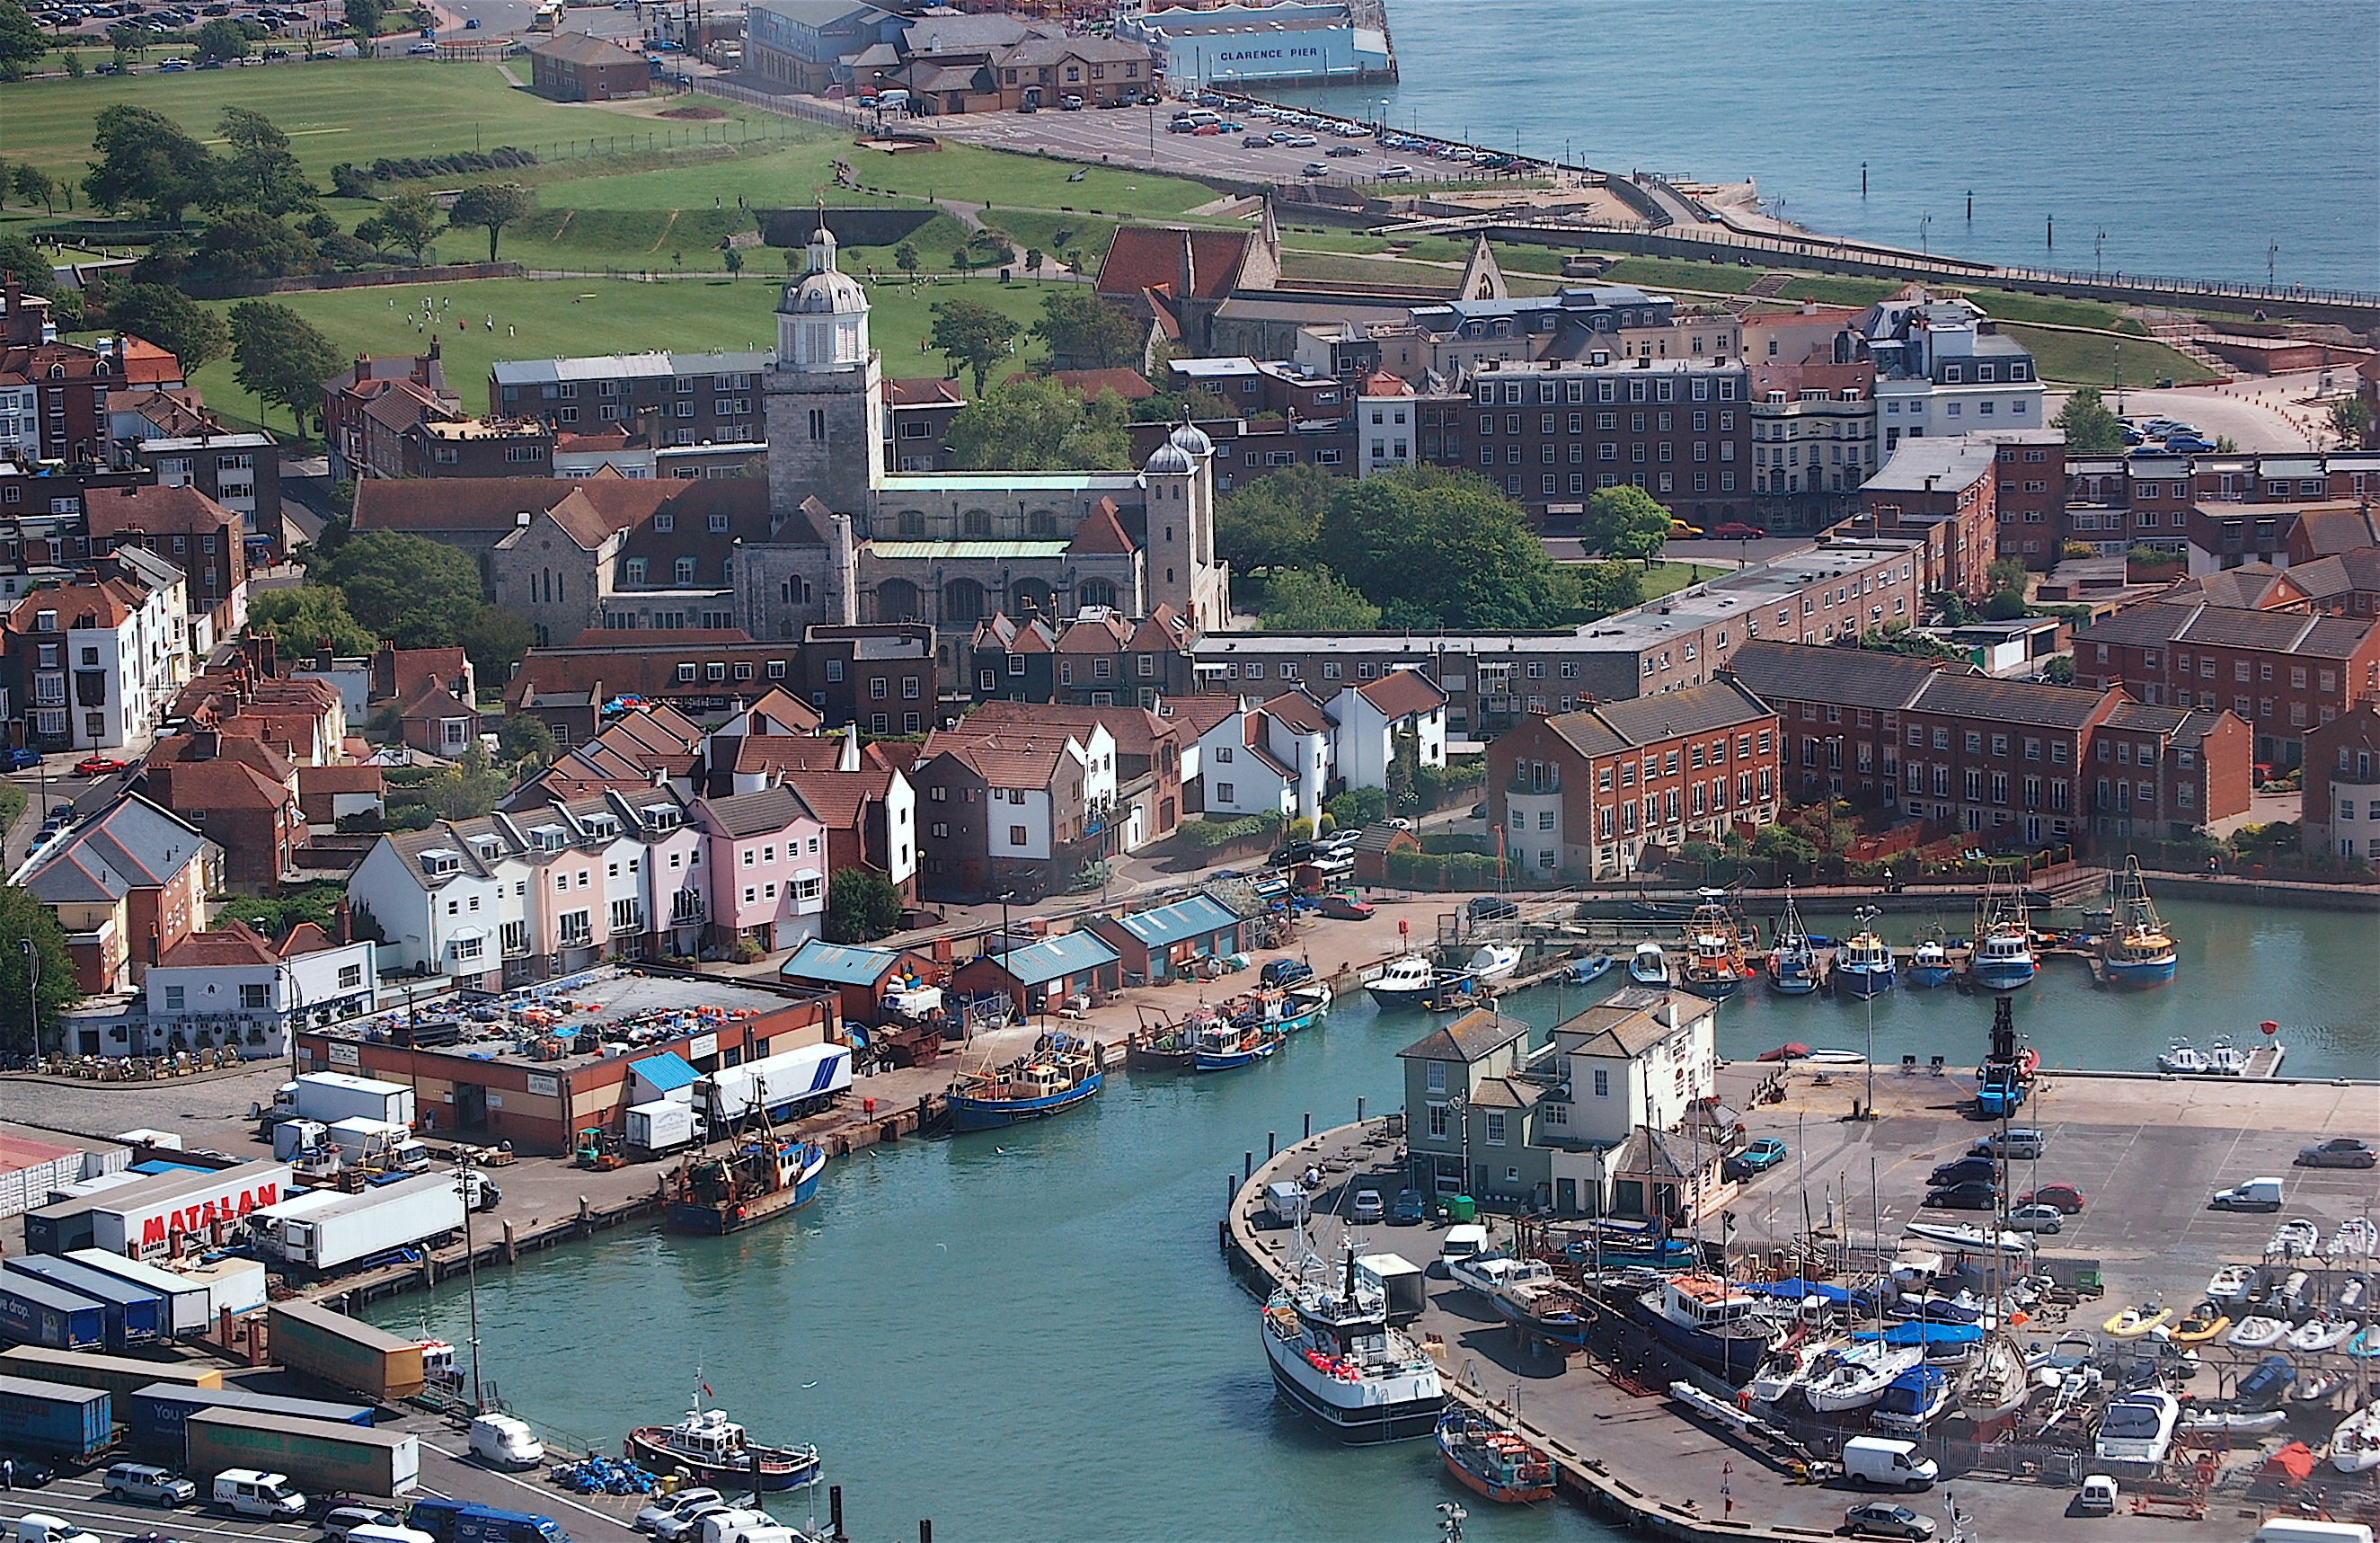 Aerial view of Old Portsmouth, Hampshire, England, UK